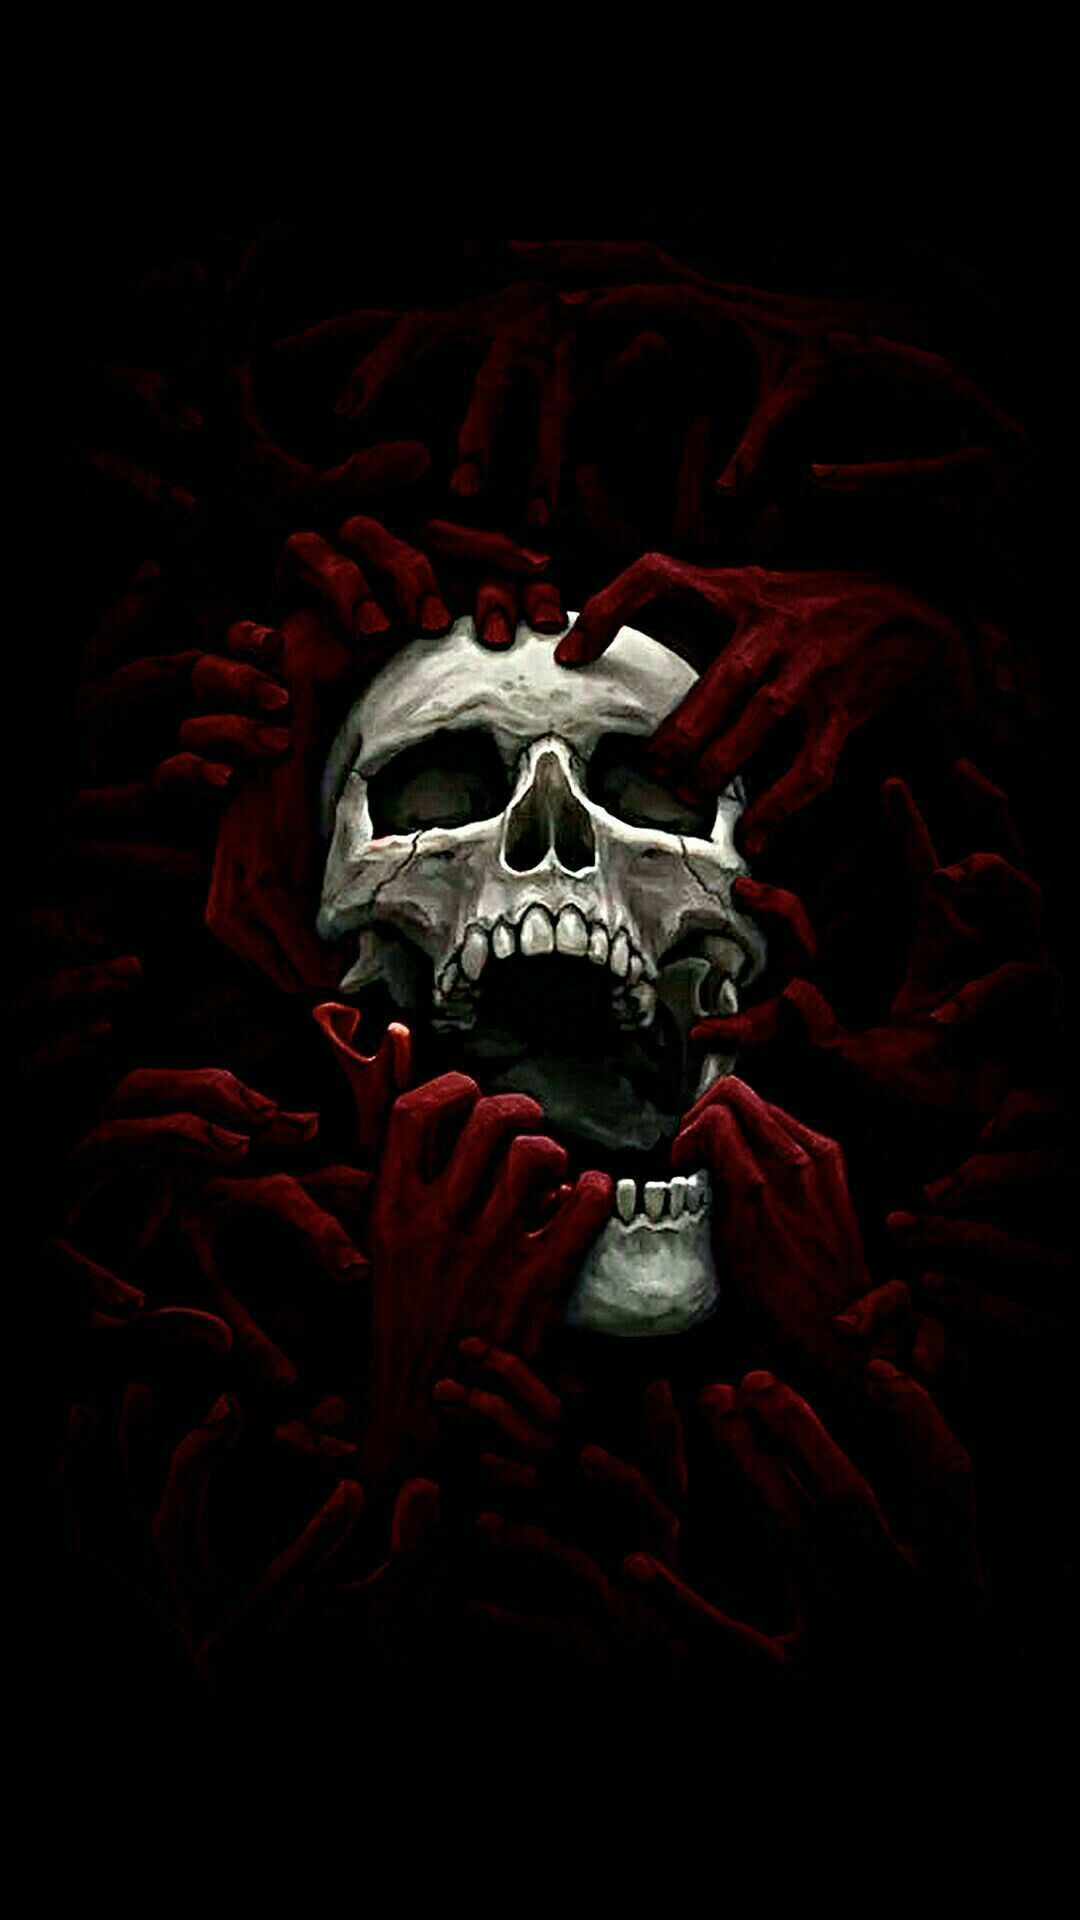 Black Skull Iphone Wallpapers Top Free Black Skull Iphone Backgrounds Wallpaperaccess